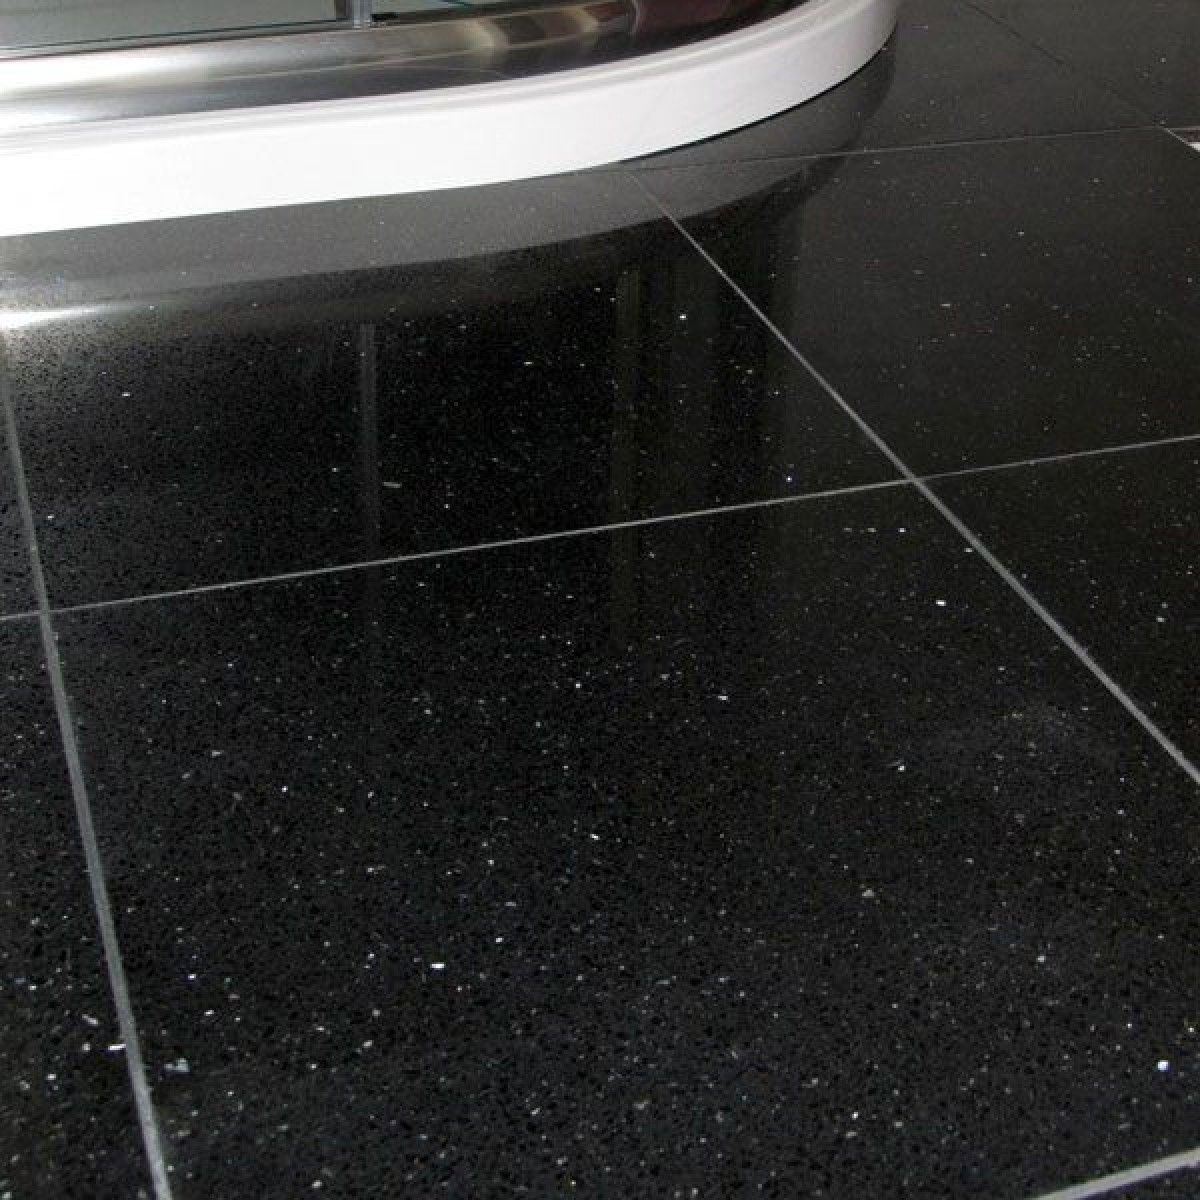 Quartz star stone black 300mm x 300mm quartzstone flooring quartz star stone black wall and floor tiles dailygadgetfo Gallery